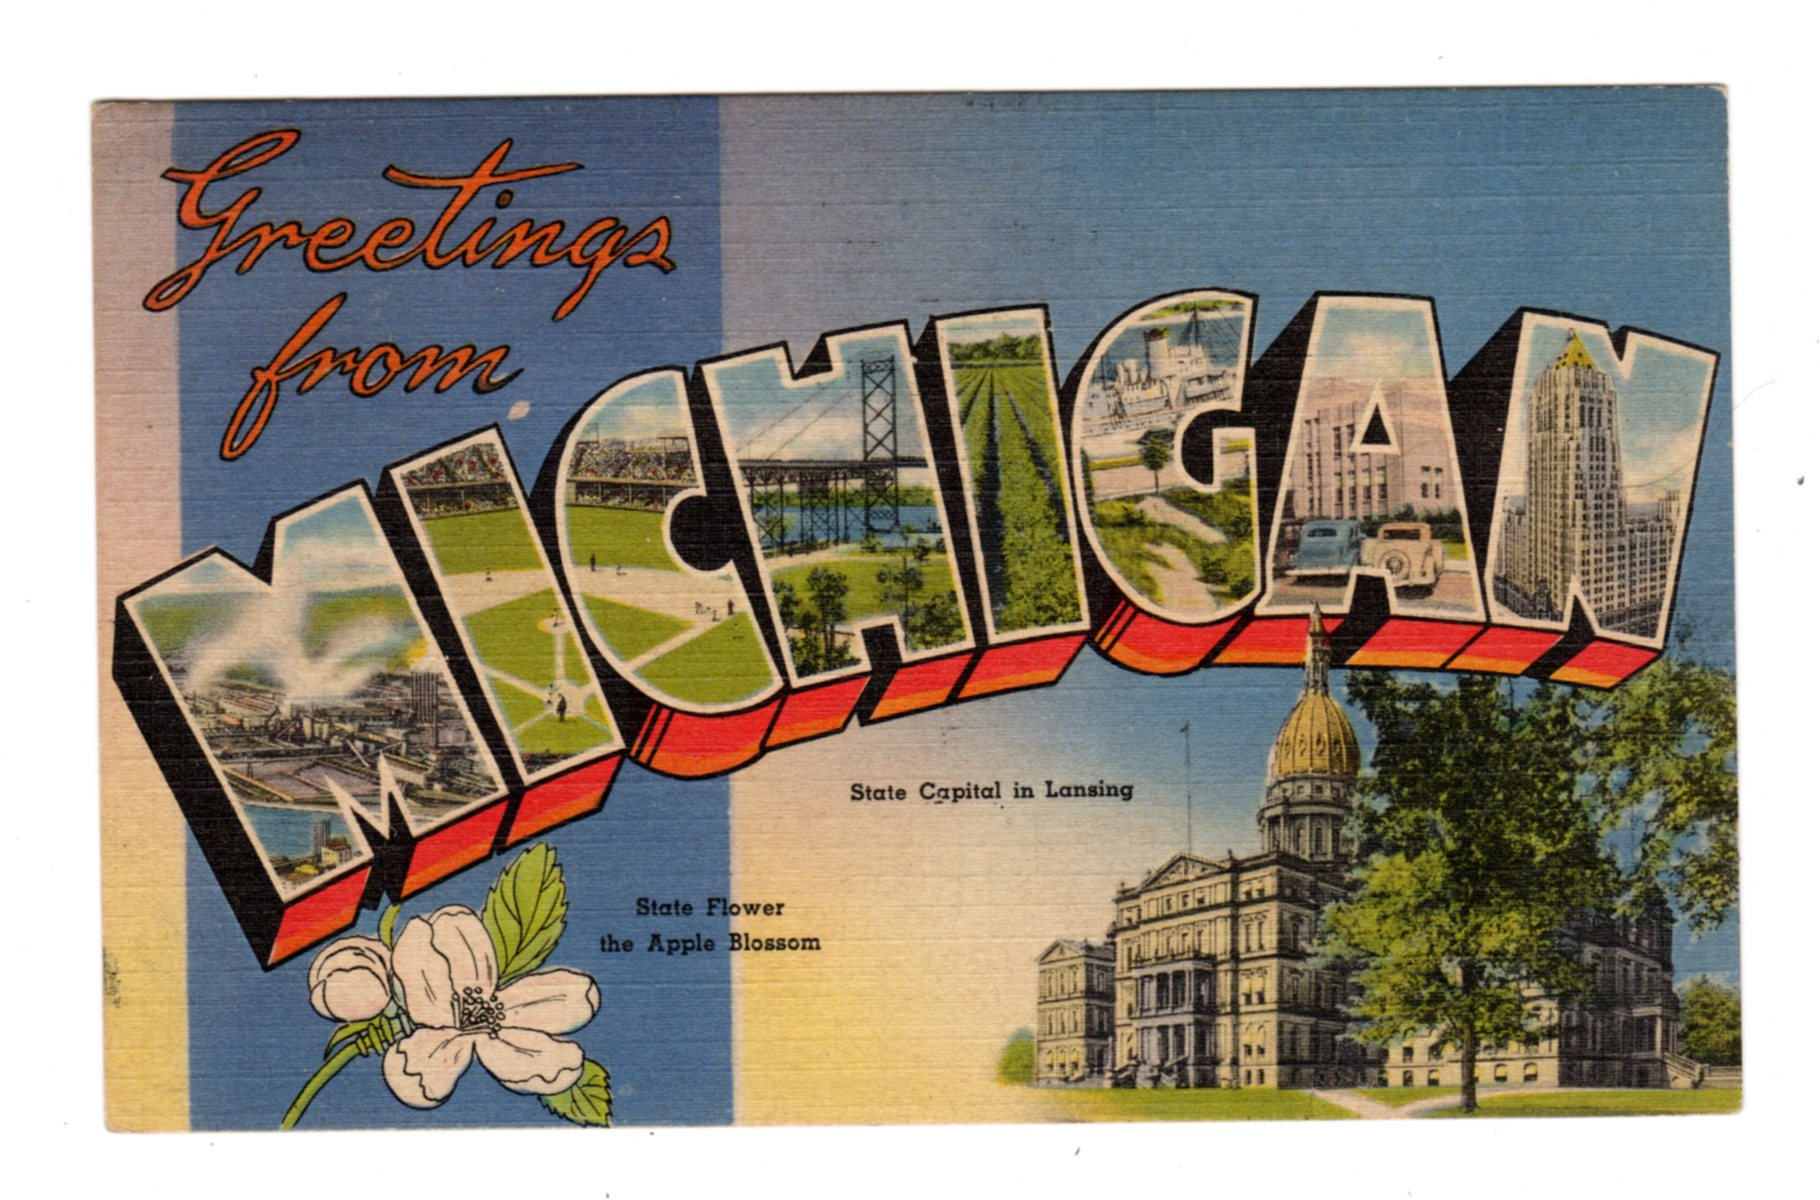 Linen postcard  Greetings from Michigan  Large letter  State Capital in  Lansing, State Flower Apple Blossom  1958